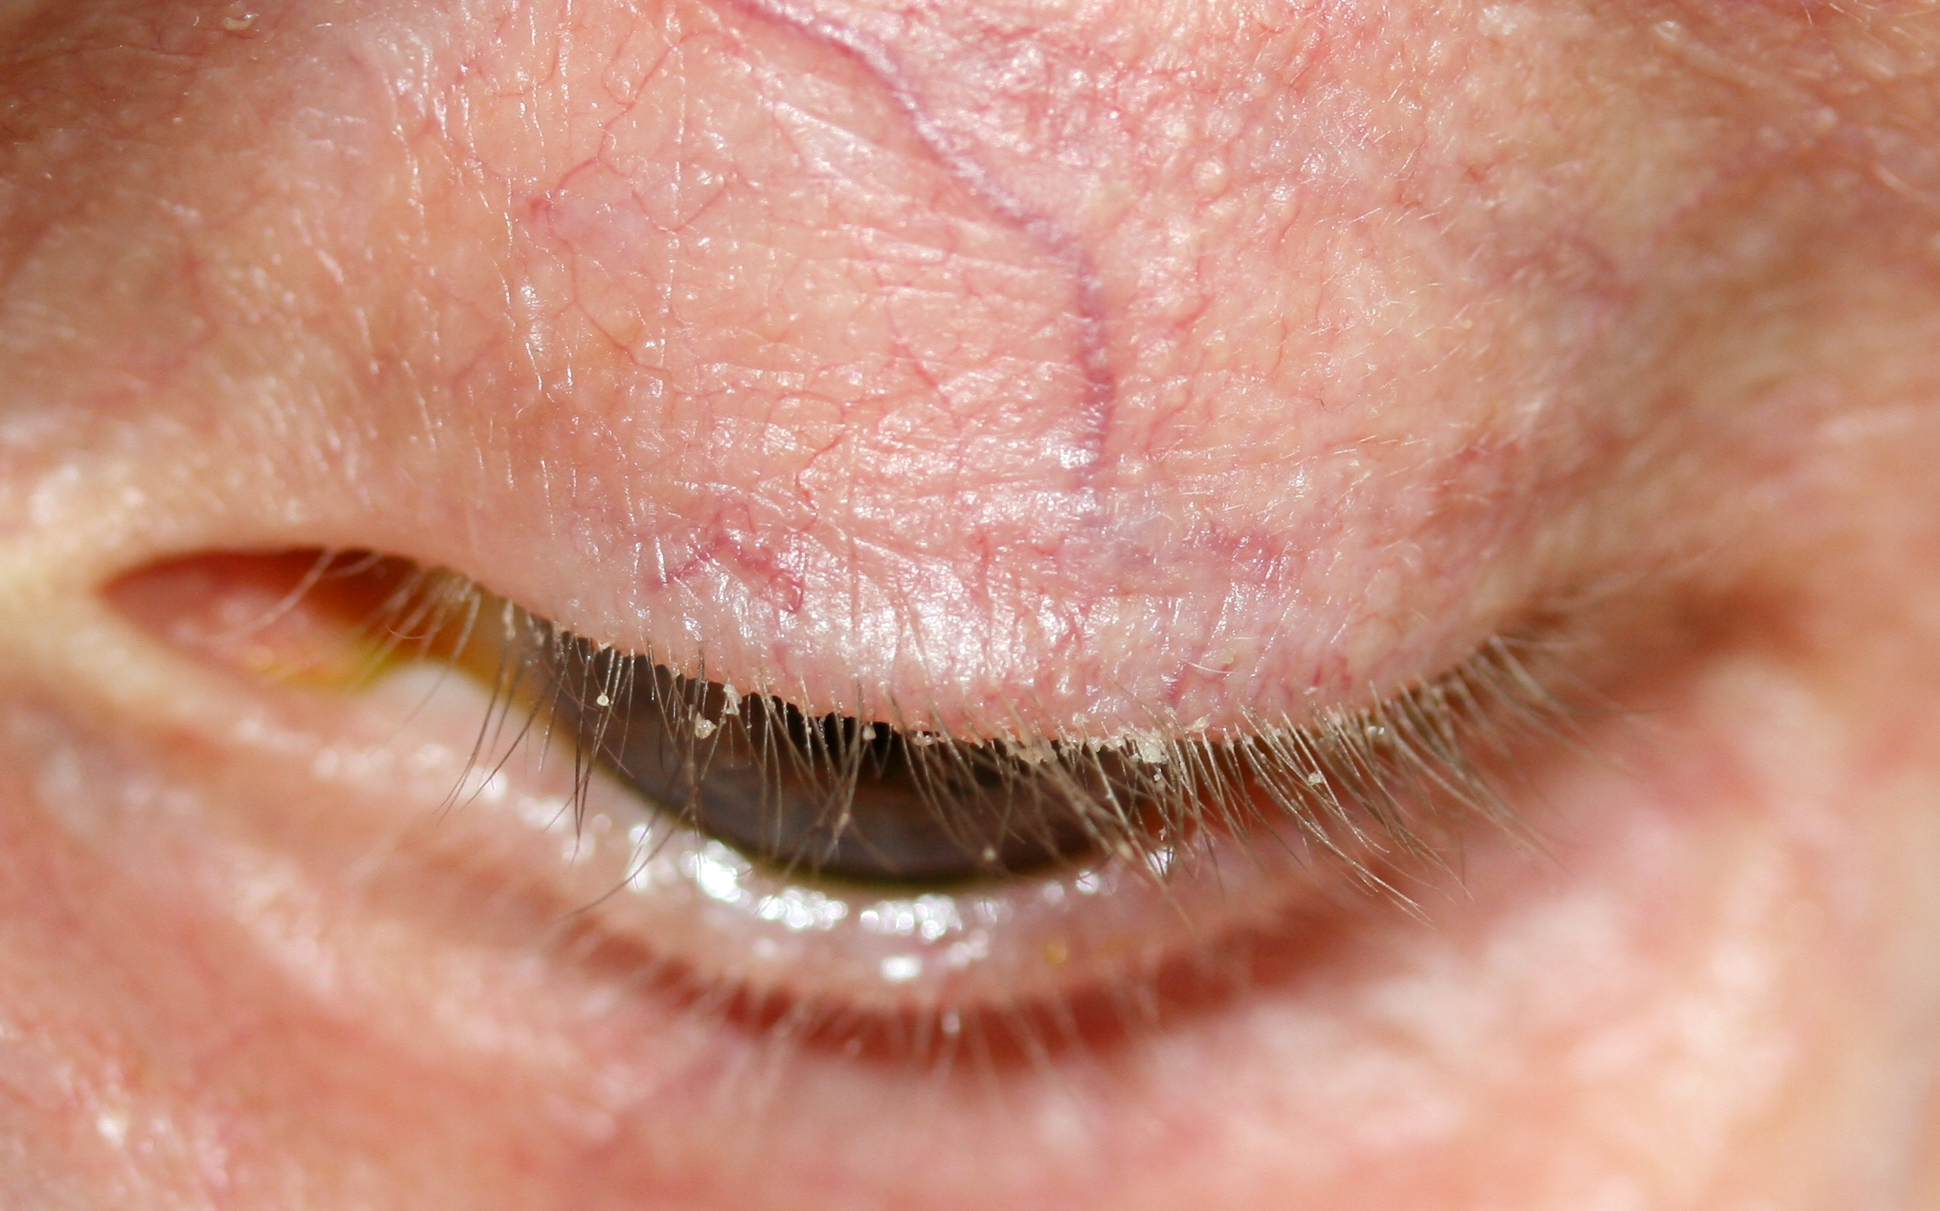 Blepharitis Treatment, Home Remedies, Symptoms & Causes